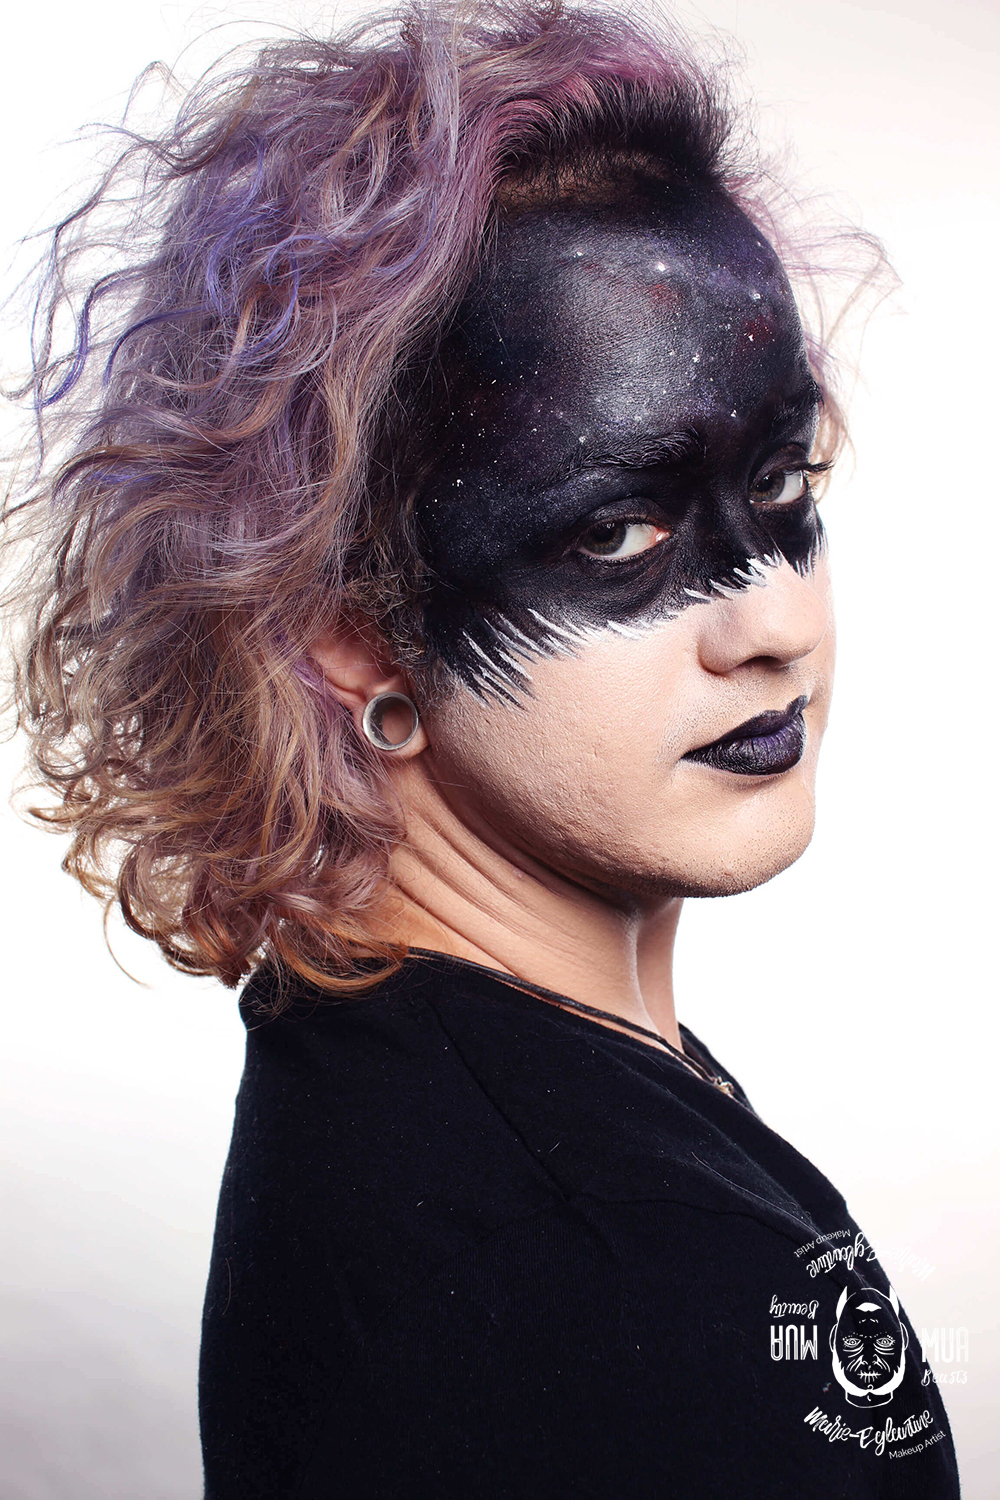 Maquillage artistique inspiration galaxies